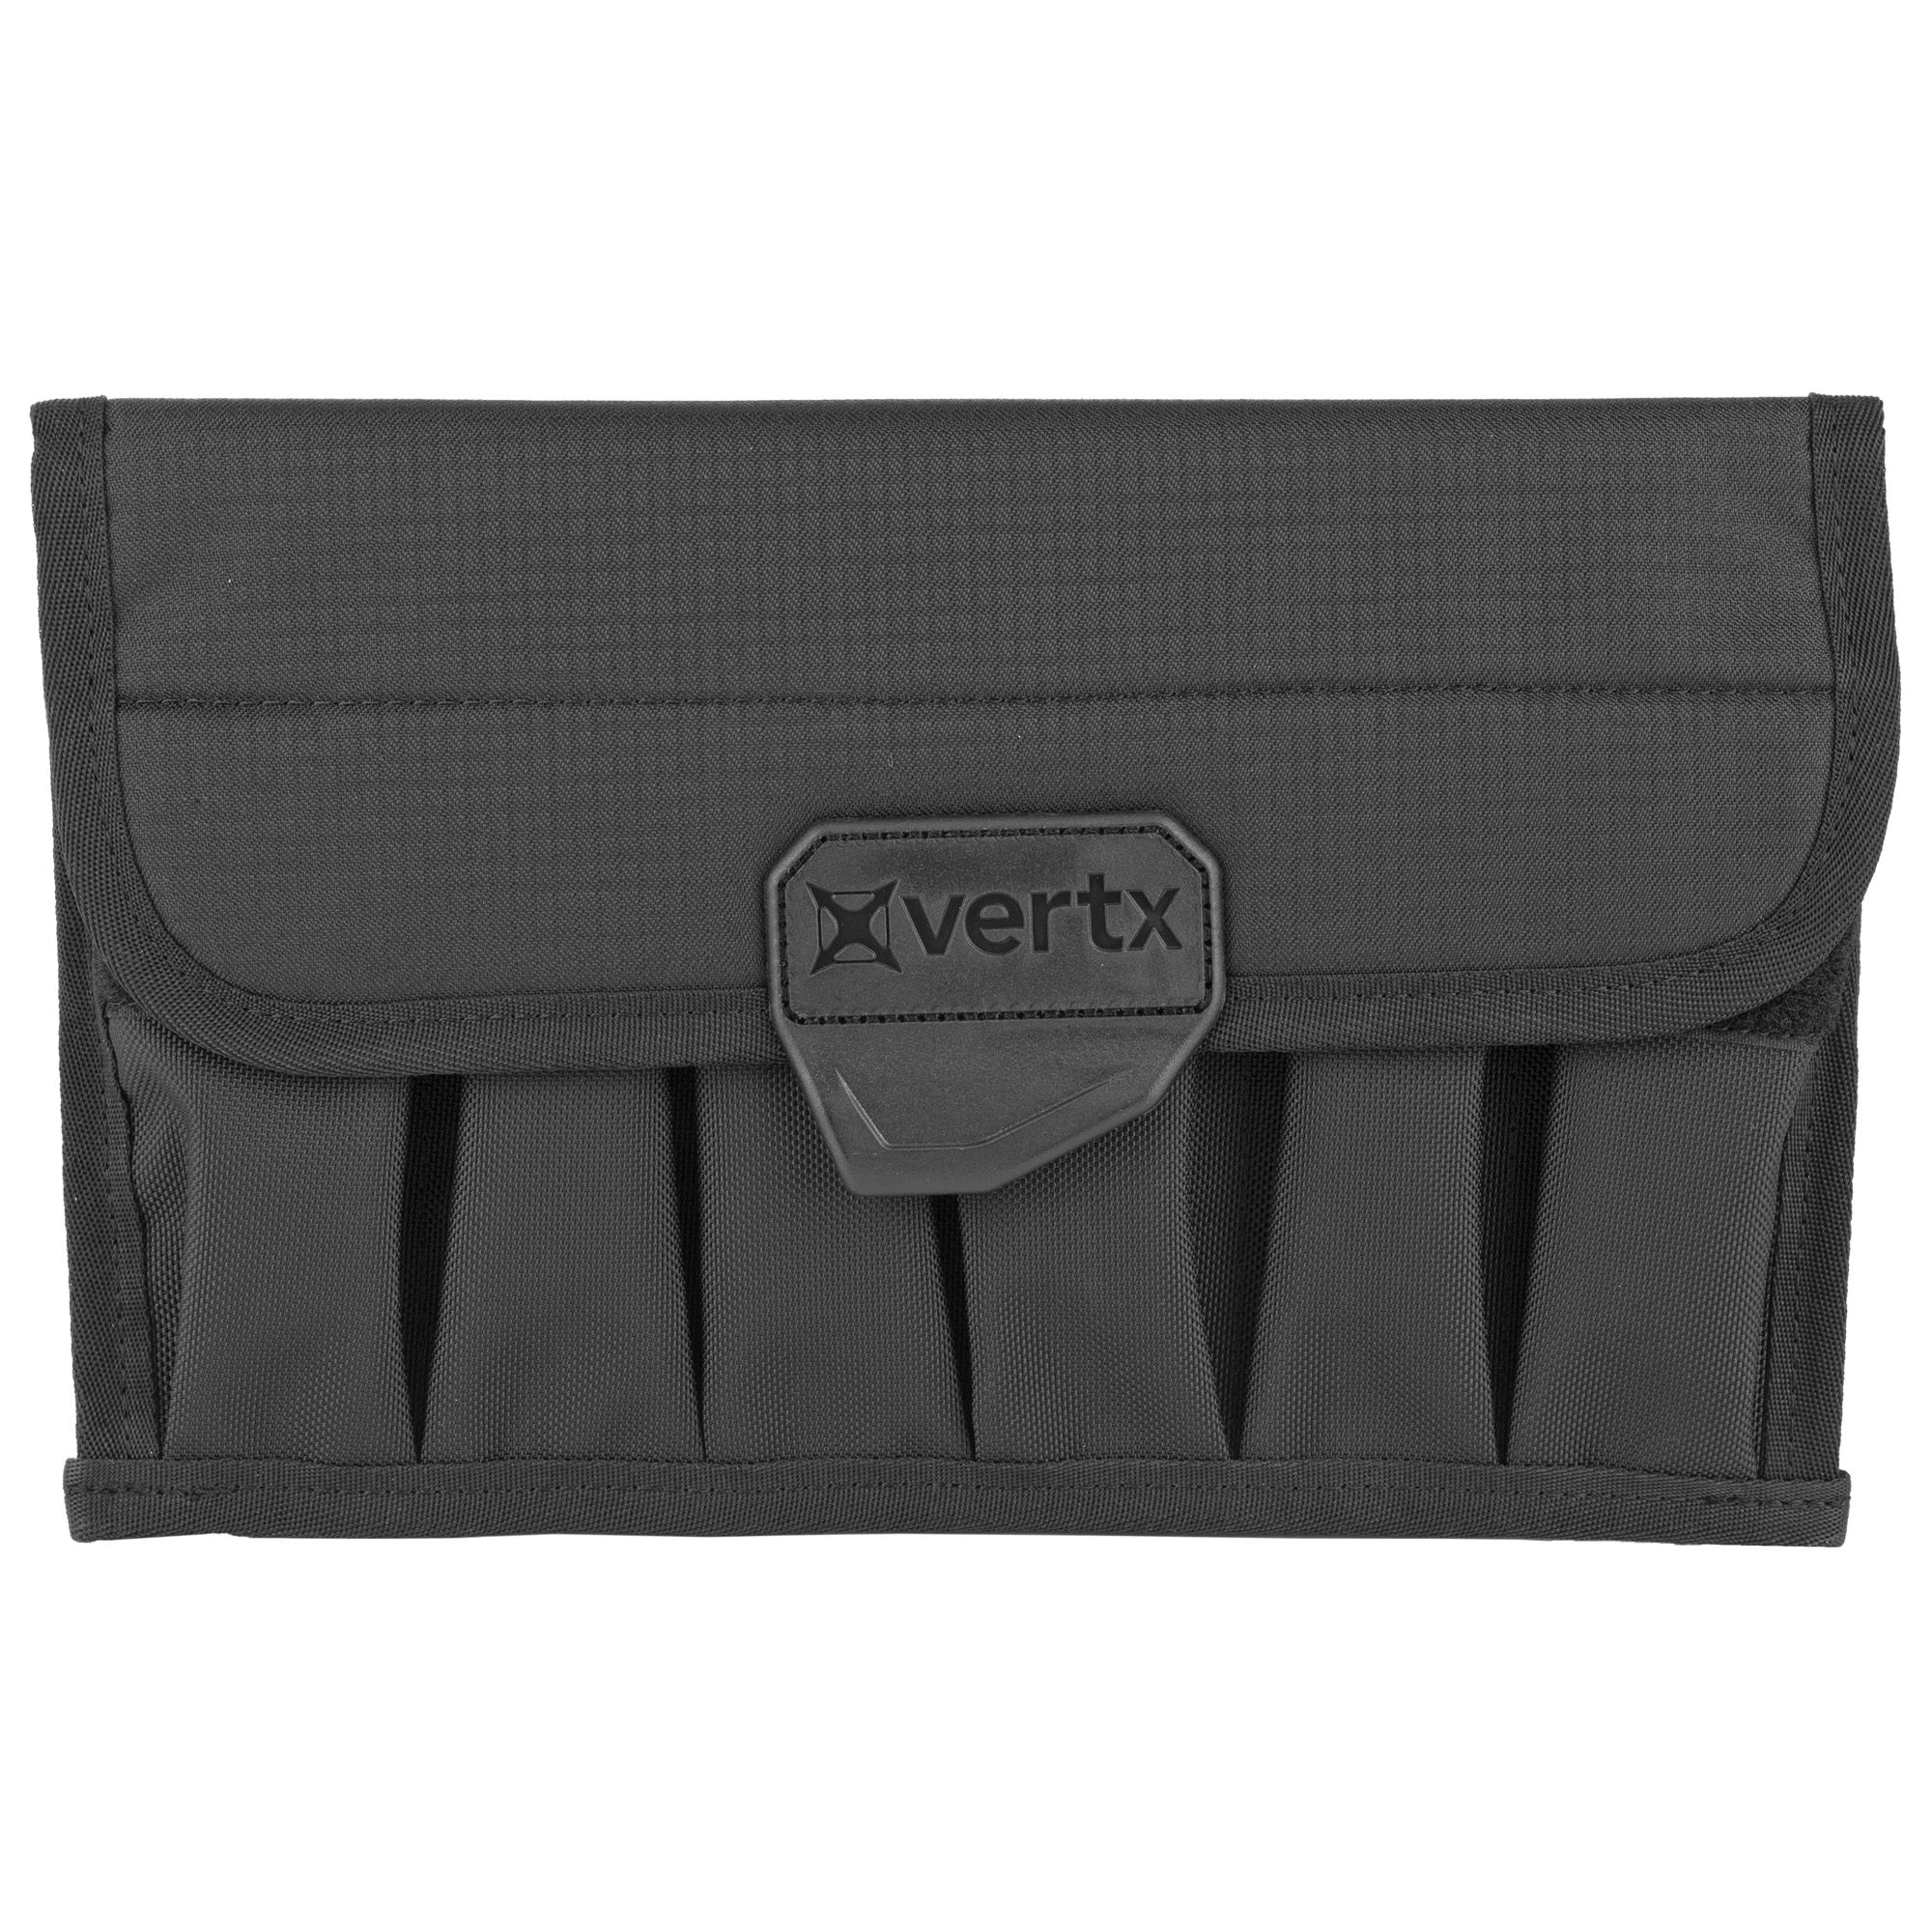 """This is a durable platform to securely store and access multiple magazines. Originally built for inclusion with the Vertx Range Bags"""" the Vertx Magazine Pouch holds up to 12 single or 6 double stack magazines. It provides a compact"""" yet durable platform to securely store"""" transport and access multiple magazines quickly. The Cordura flap secured with Velcro keeps dirt and dust away from magazines. The Vertx Magazine Pouch is excellent and compatible complement to any Vertx Bag or Pack"""